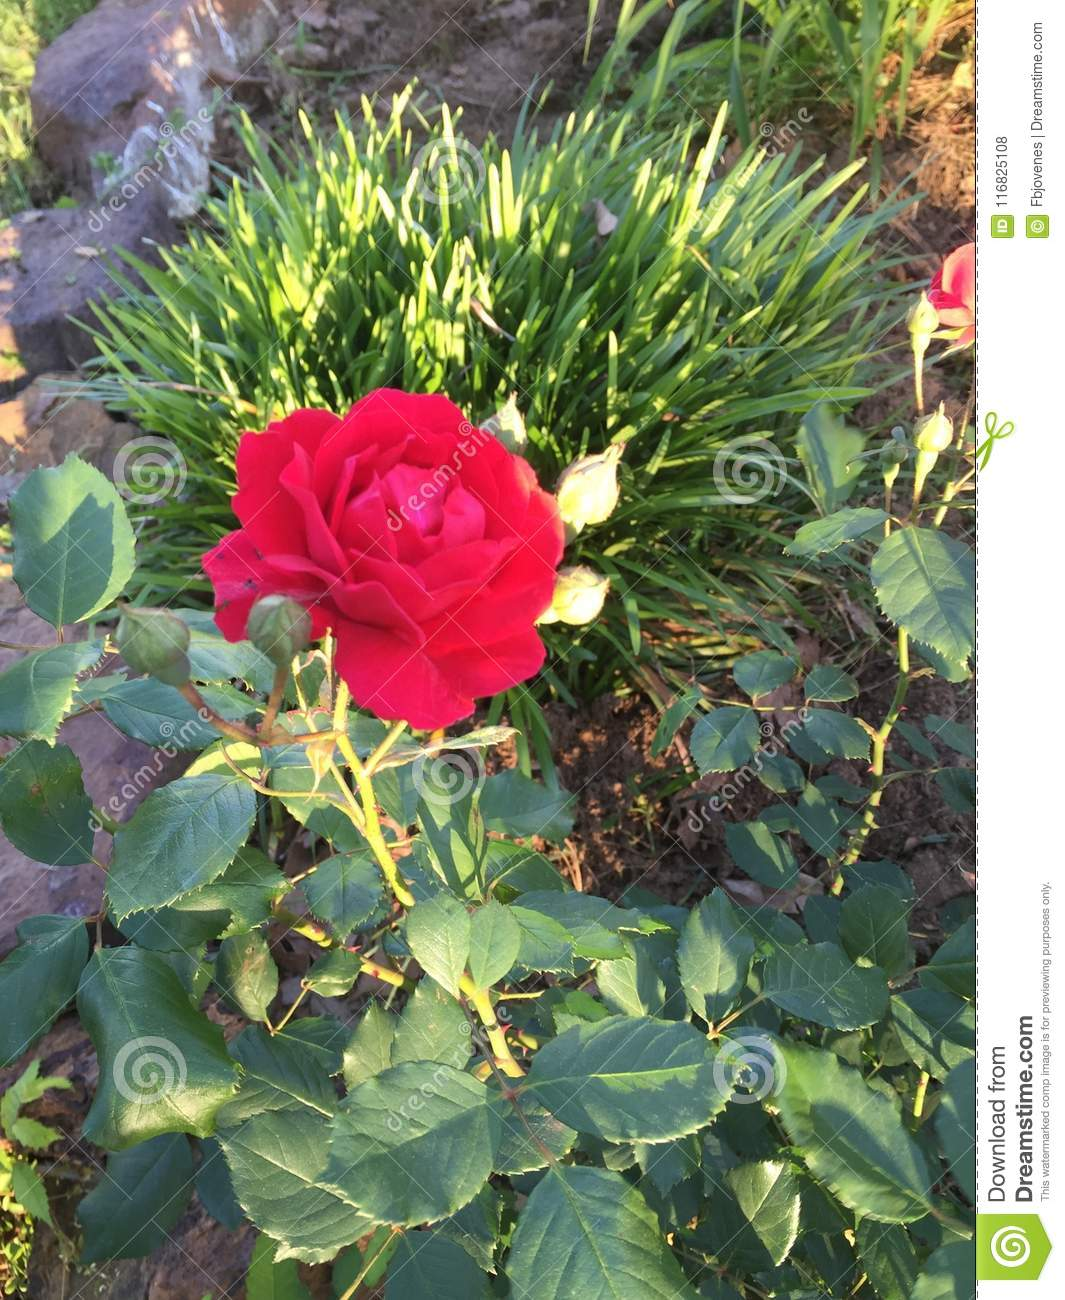 A red rose from rural East Texas